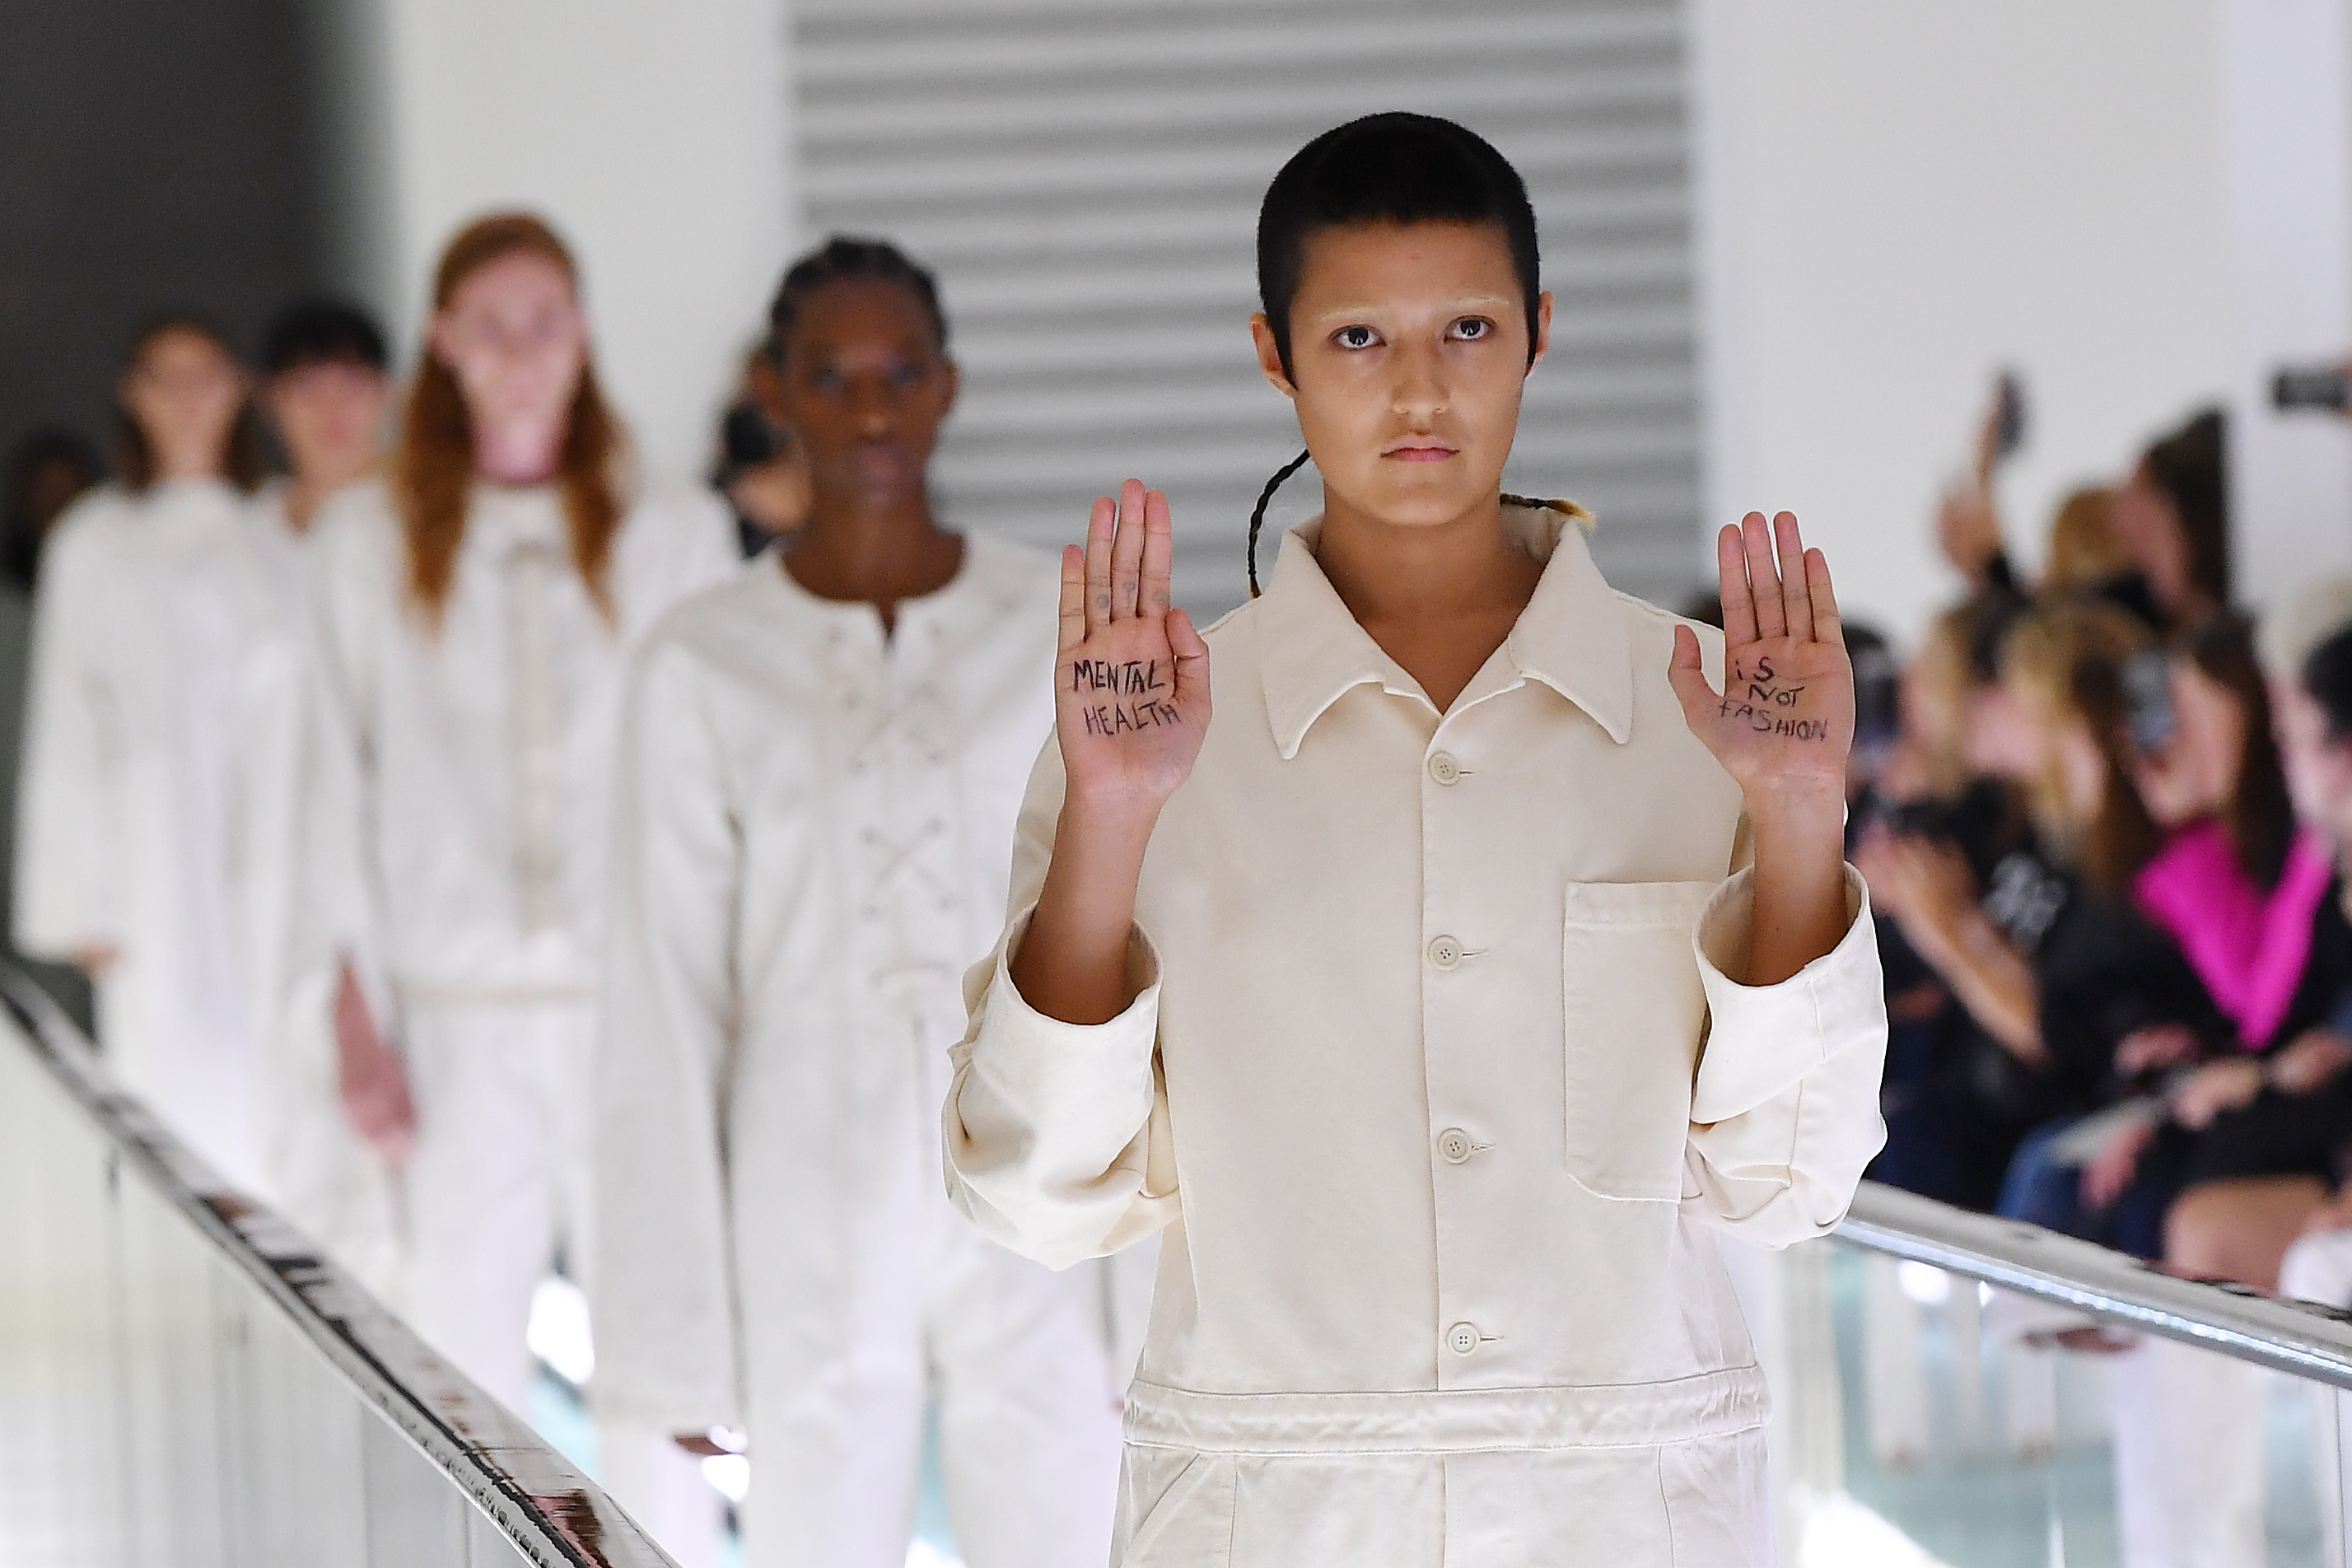 Non-binary model Ayesha Tan Jones protested mid-catwalk against Italian fashion house Gucci's use of straight jackets in its SS20 collection. (Jacopo Raule/Getty Images for Gucci)